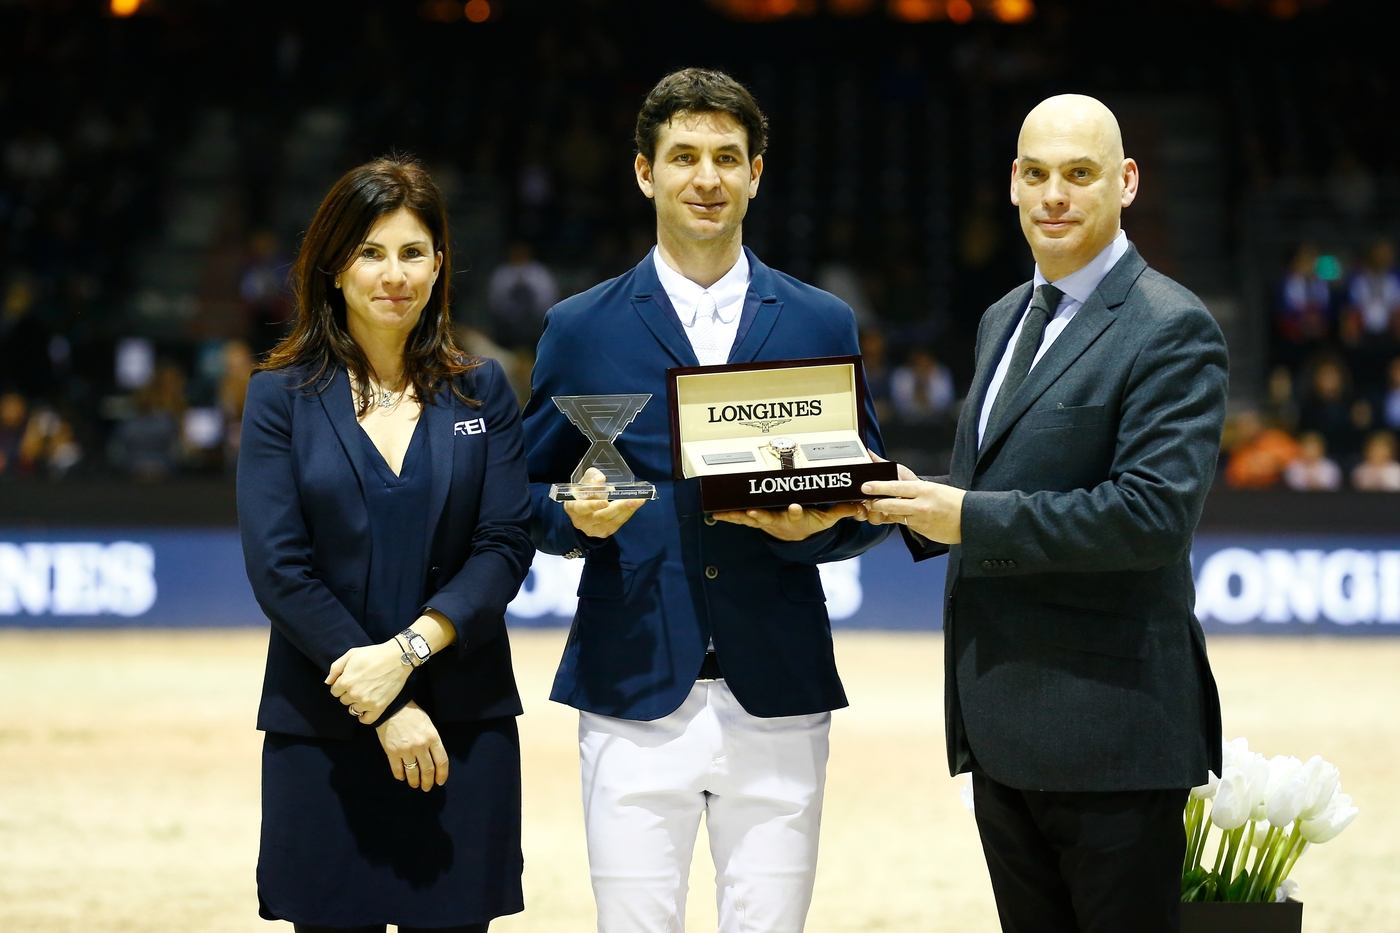 Longines Show Jumping Event: Daniel Deusser and Tobago Z claimed stunning victory at the Longines FEI Jumping World Cup™ leg in Bordeaux 3